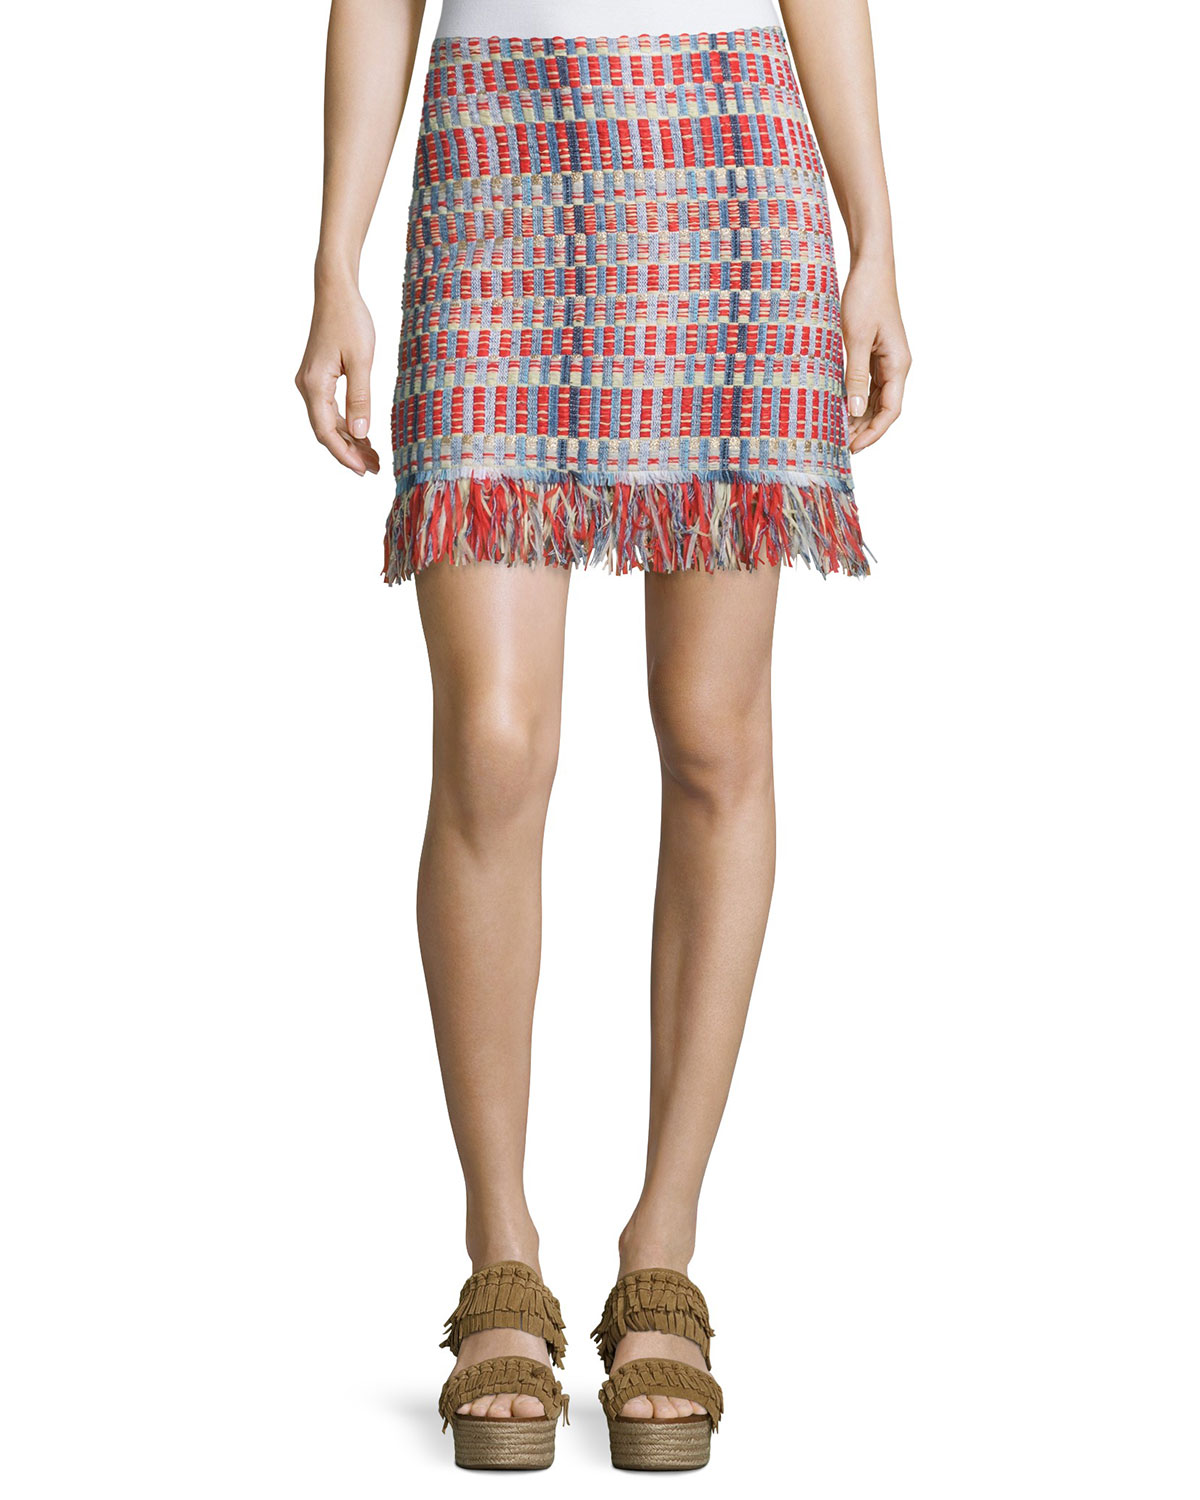 Tara Tweed Skirt with Fringe